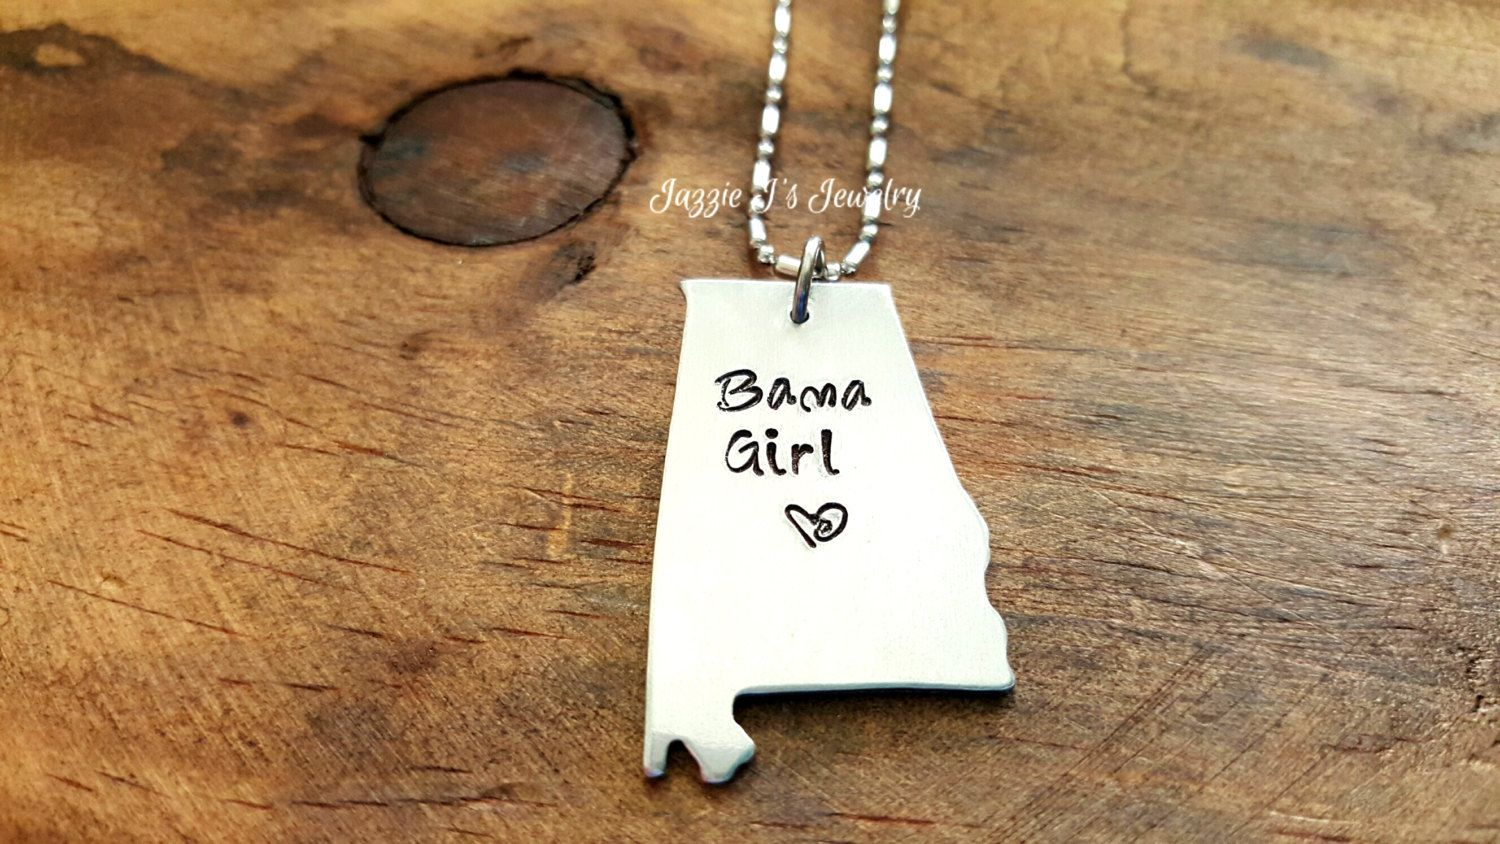 Bama Girl Hand Stamped Necklace, Alabama State Necklace, Alabama Girl Necklace, Southern Jewelry, Alabama, Gift for Her, Sweet Home Alabama by JazzieJsJewelry on Etsy